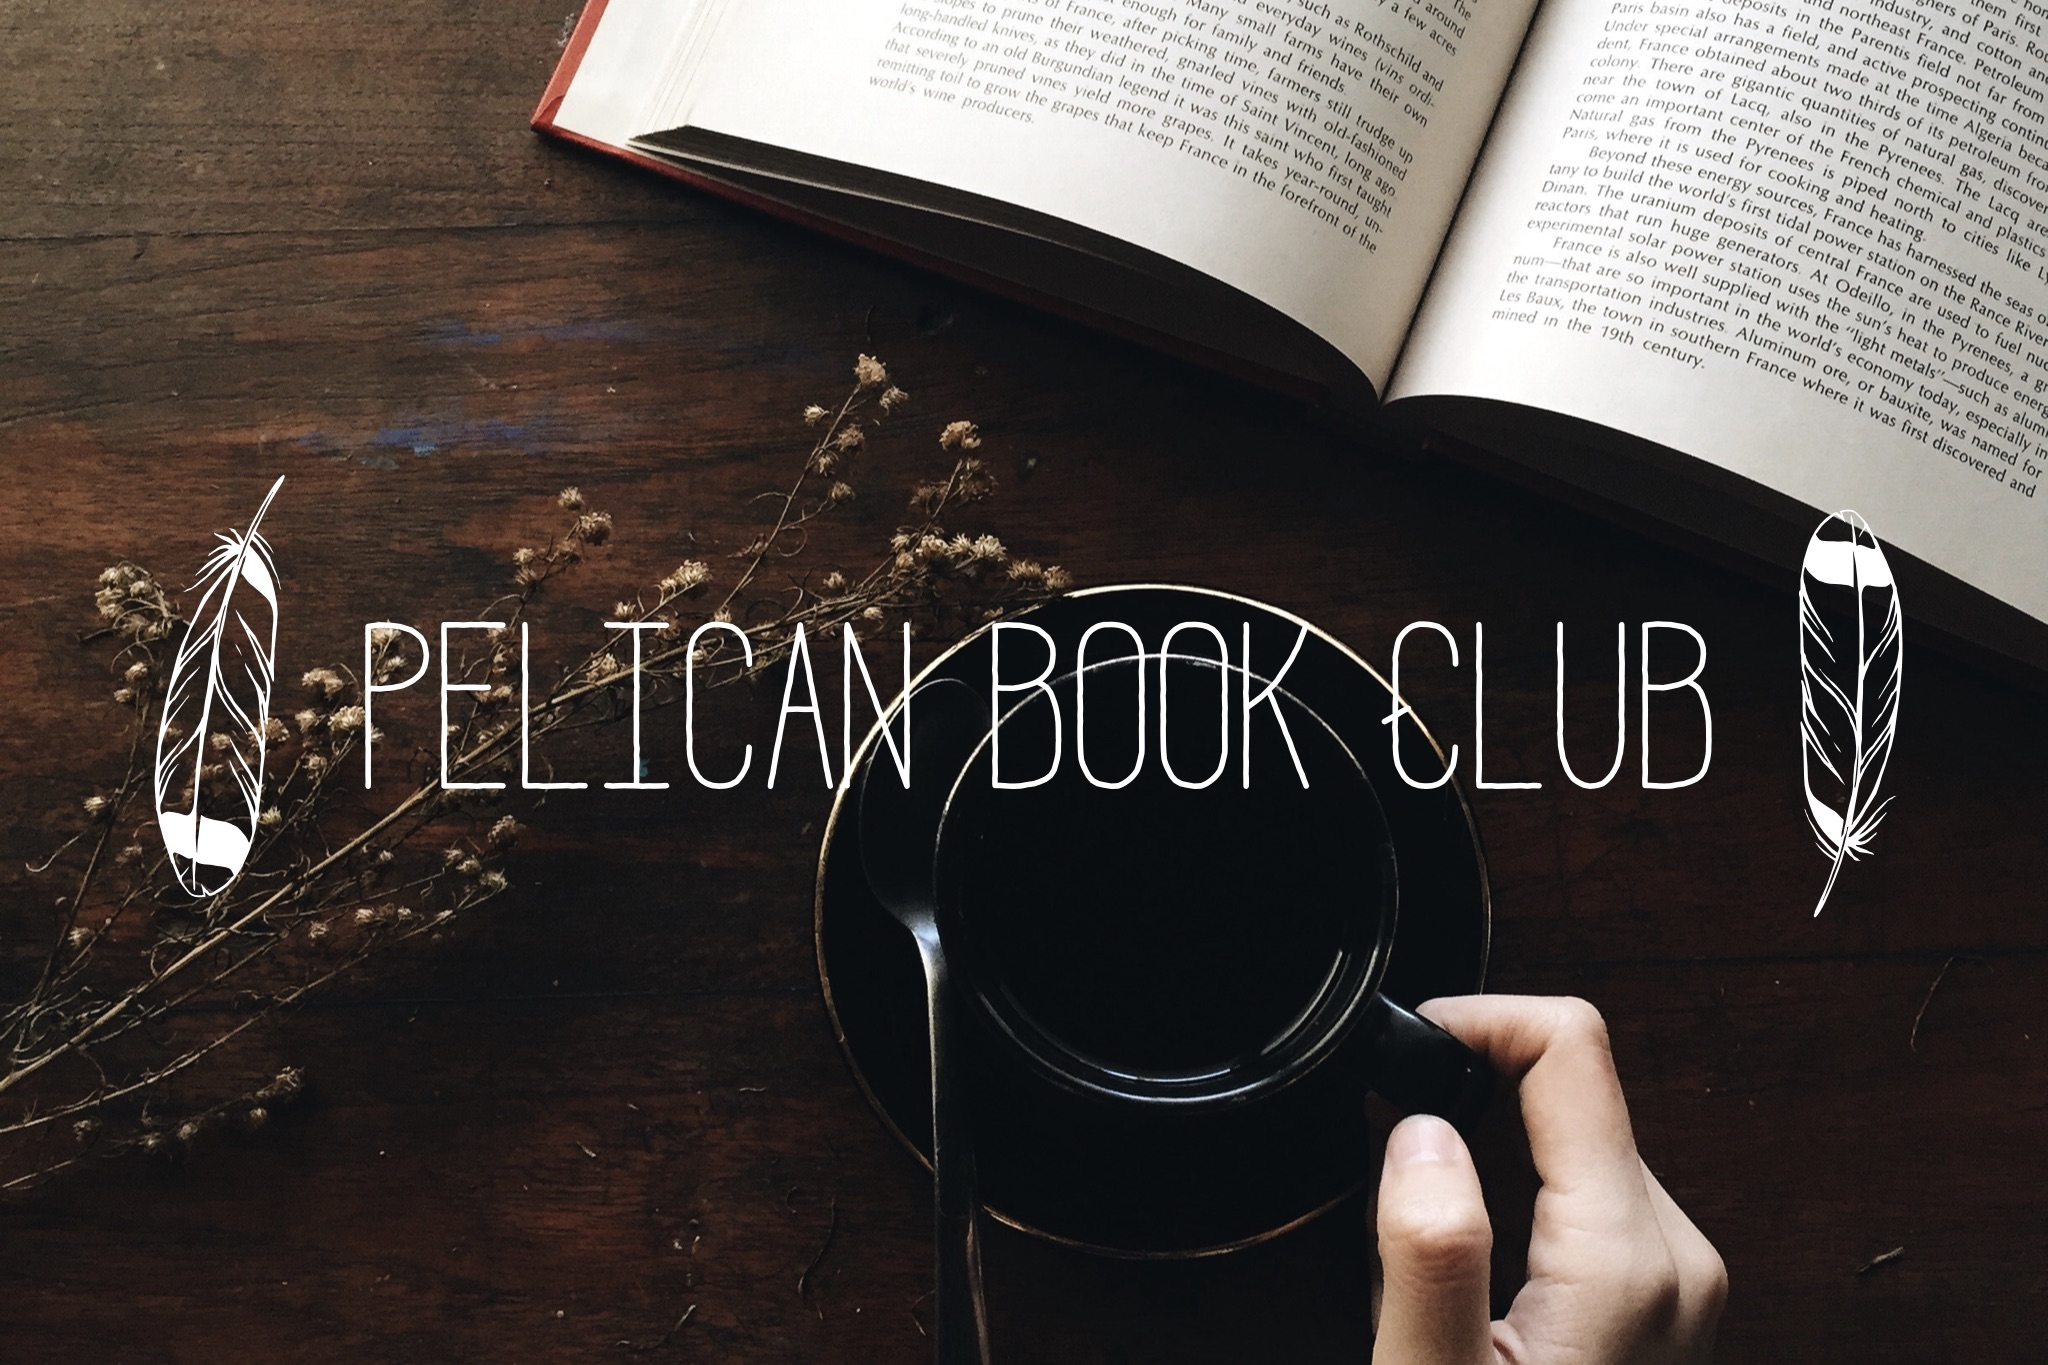 Pelican Book Club.jpg